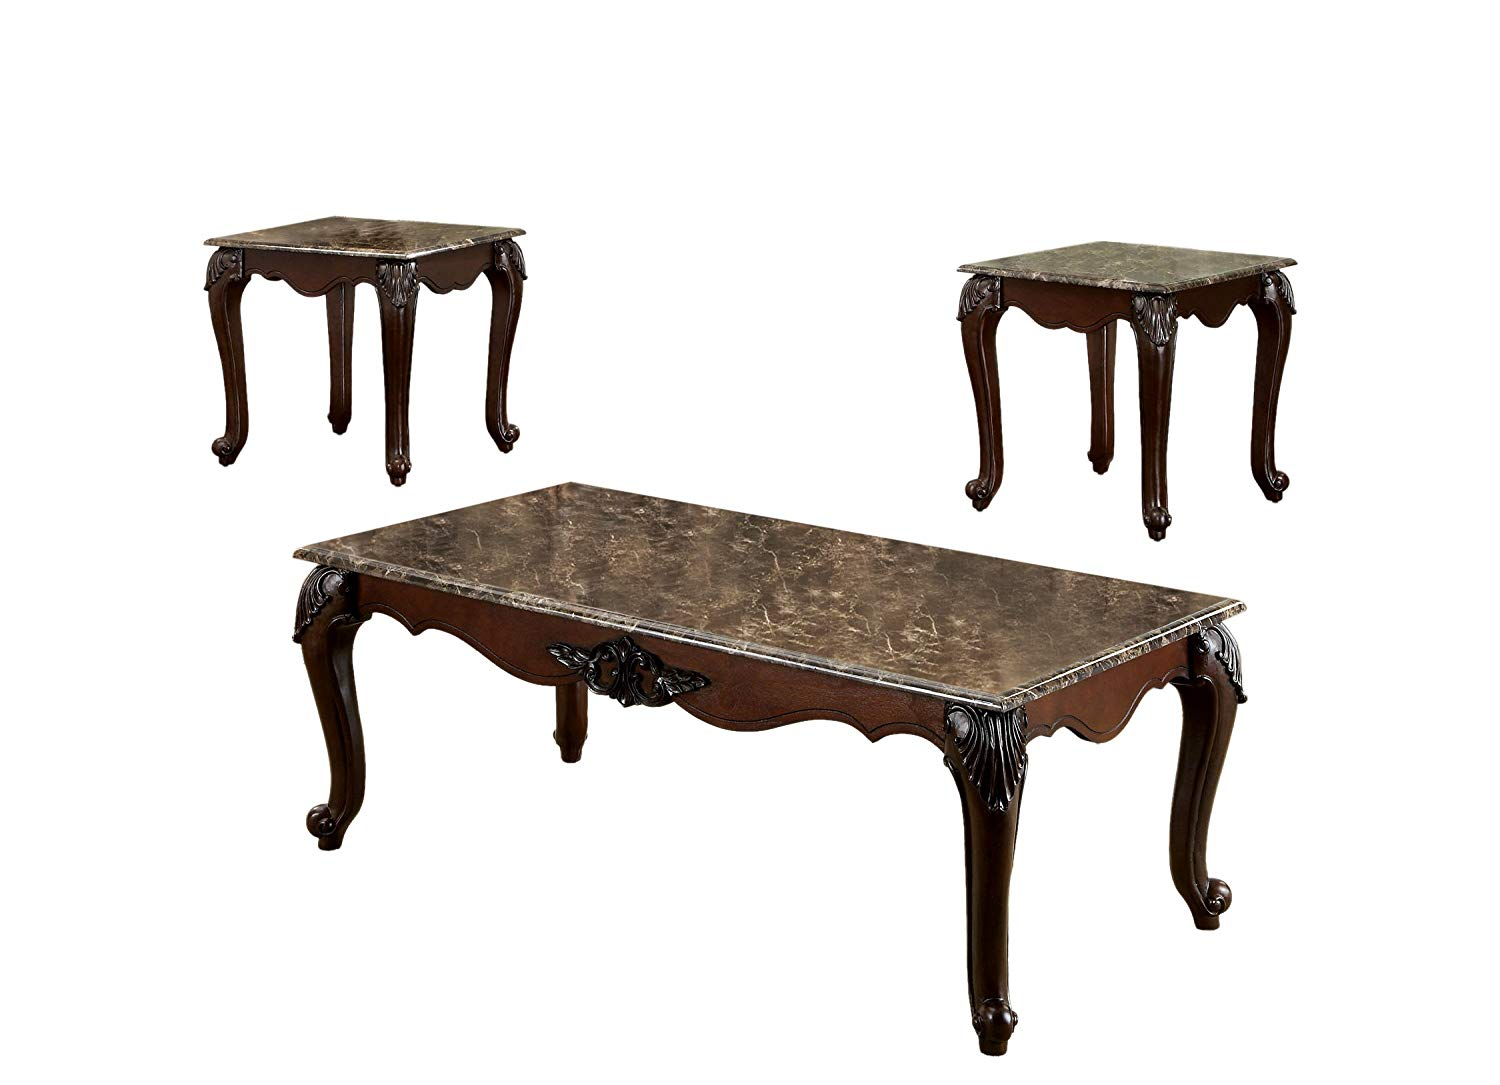 furniture america margaux piece french style accent cherry wood end table set with faux marble tops dark finish kitchen dining pretty coffee tables ikea side drawers locking